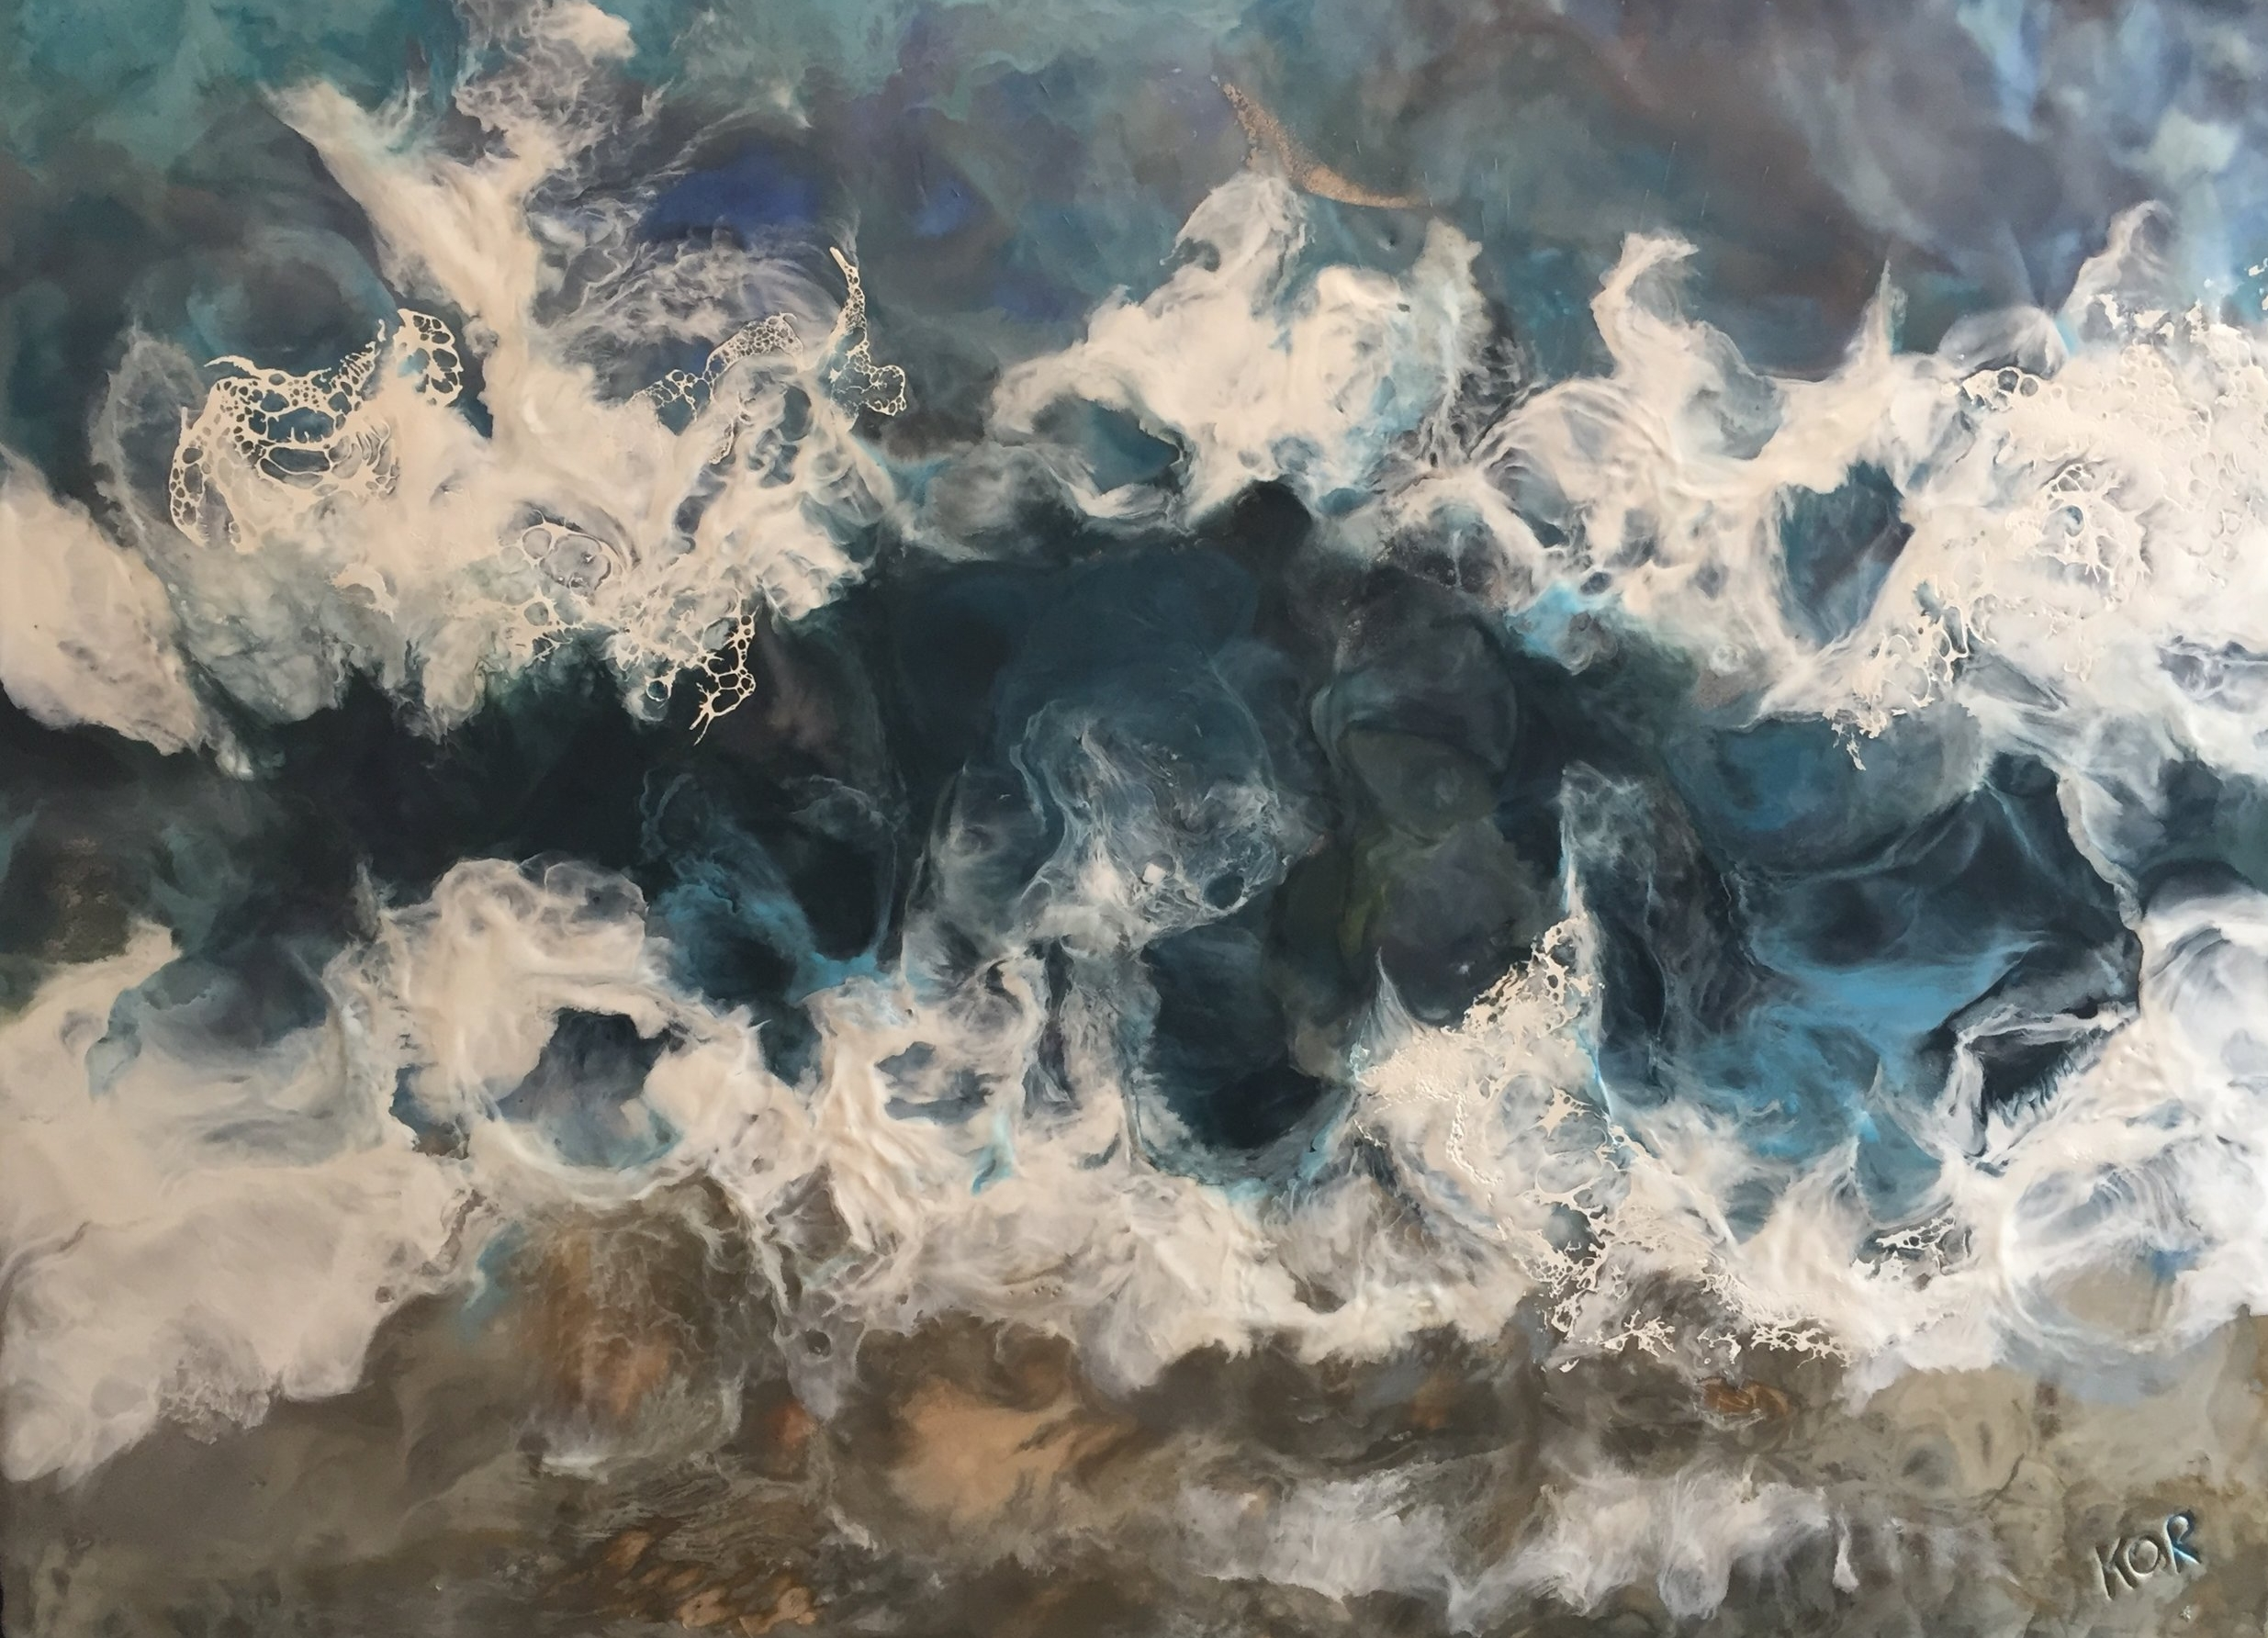 """Tempest""                                                                                                                        Encaustic on Birch Panel                                                                                                                   25 x 19   ($1200)"